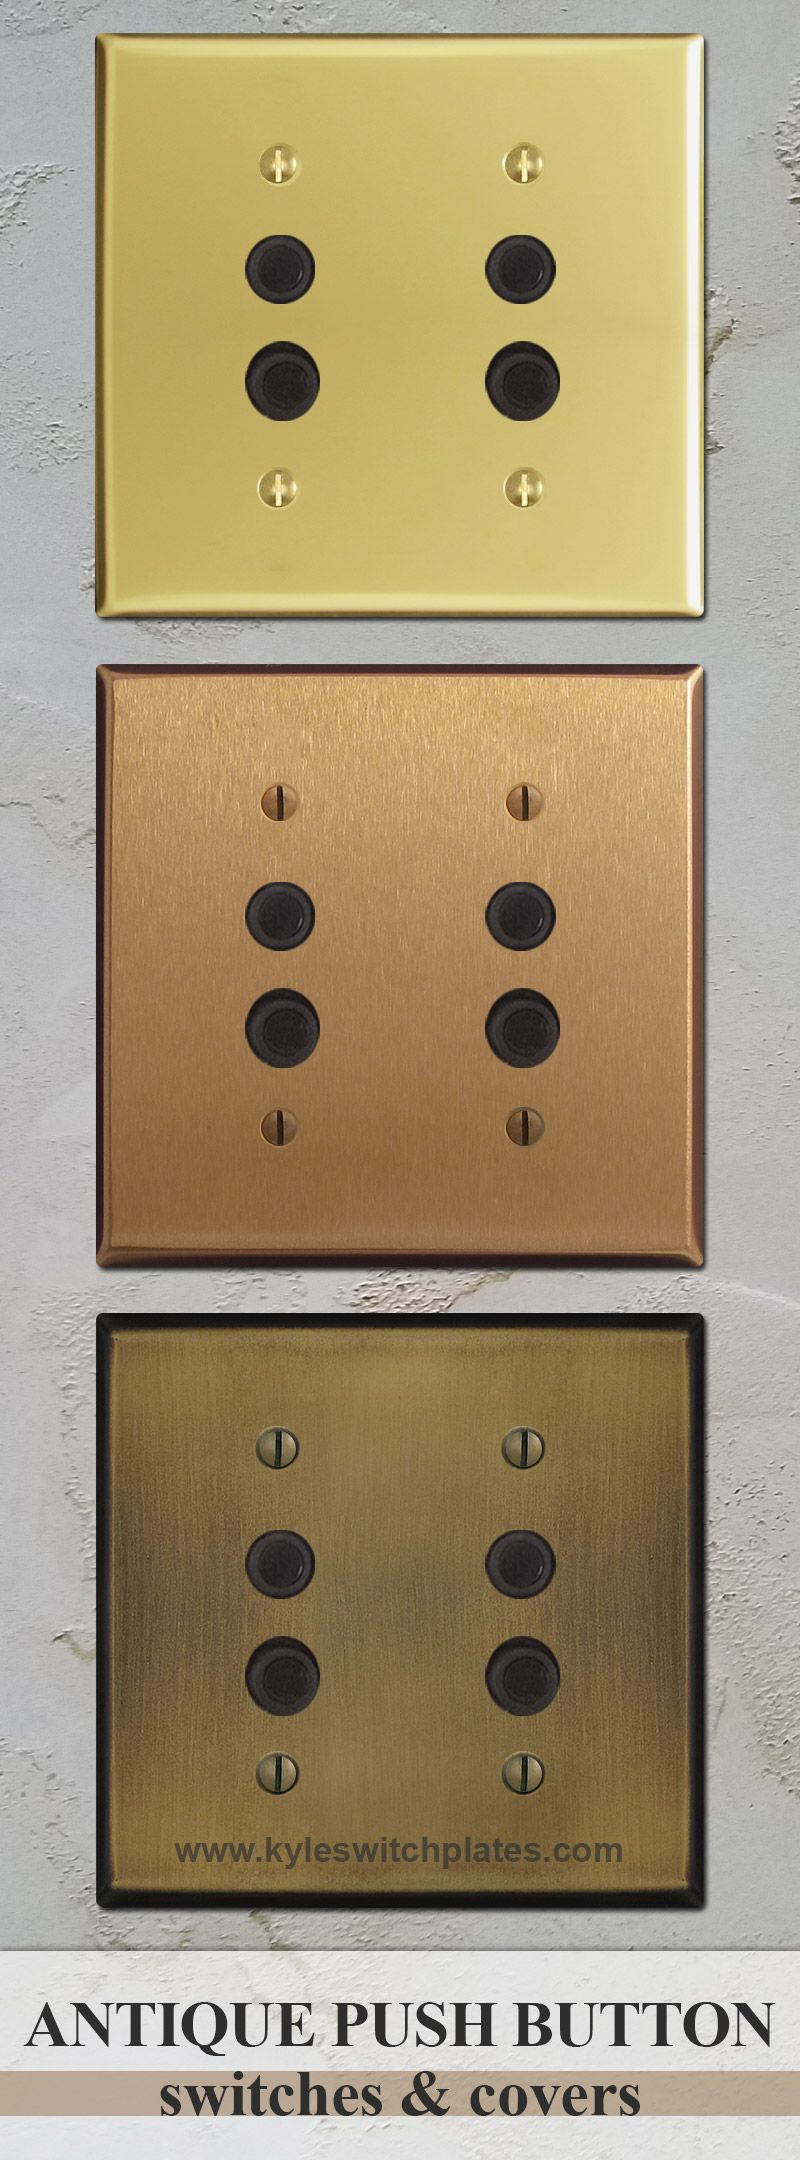 Buy antique push button switches & cover plates for vintage lighting.